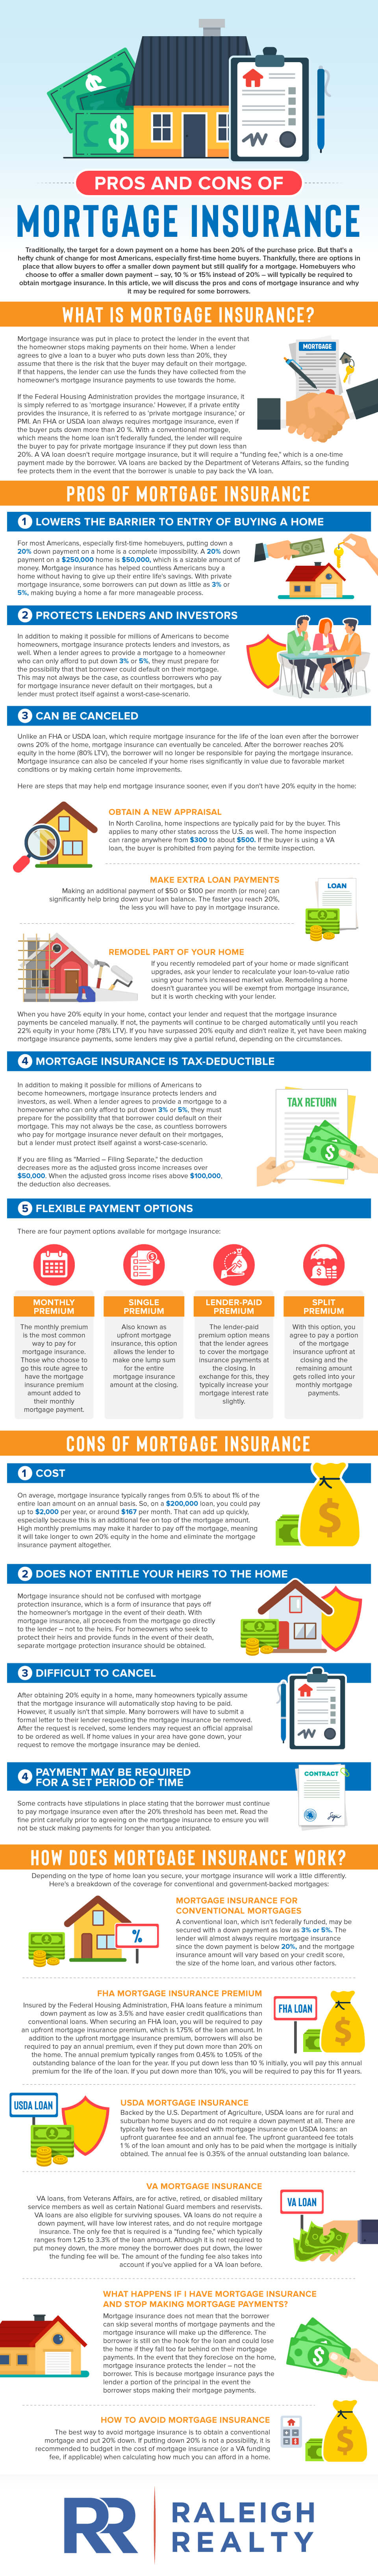 What is Mortgage Insurance? What are the Pros and Cons of Private Mortgage Insurance (PMI)